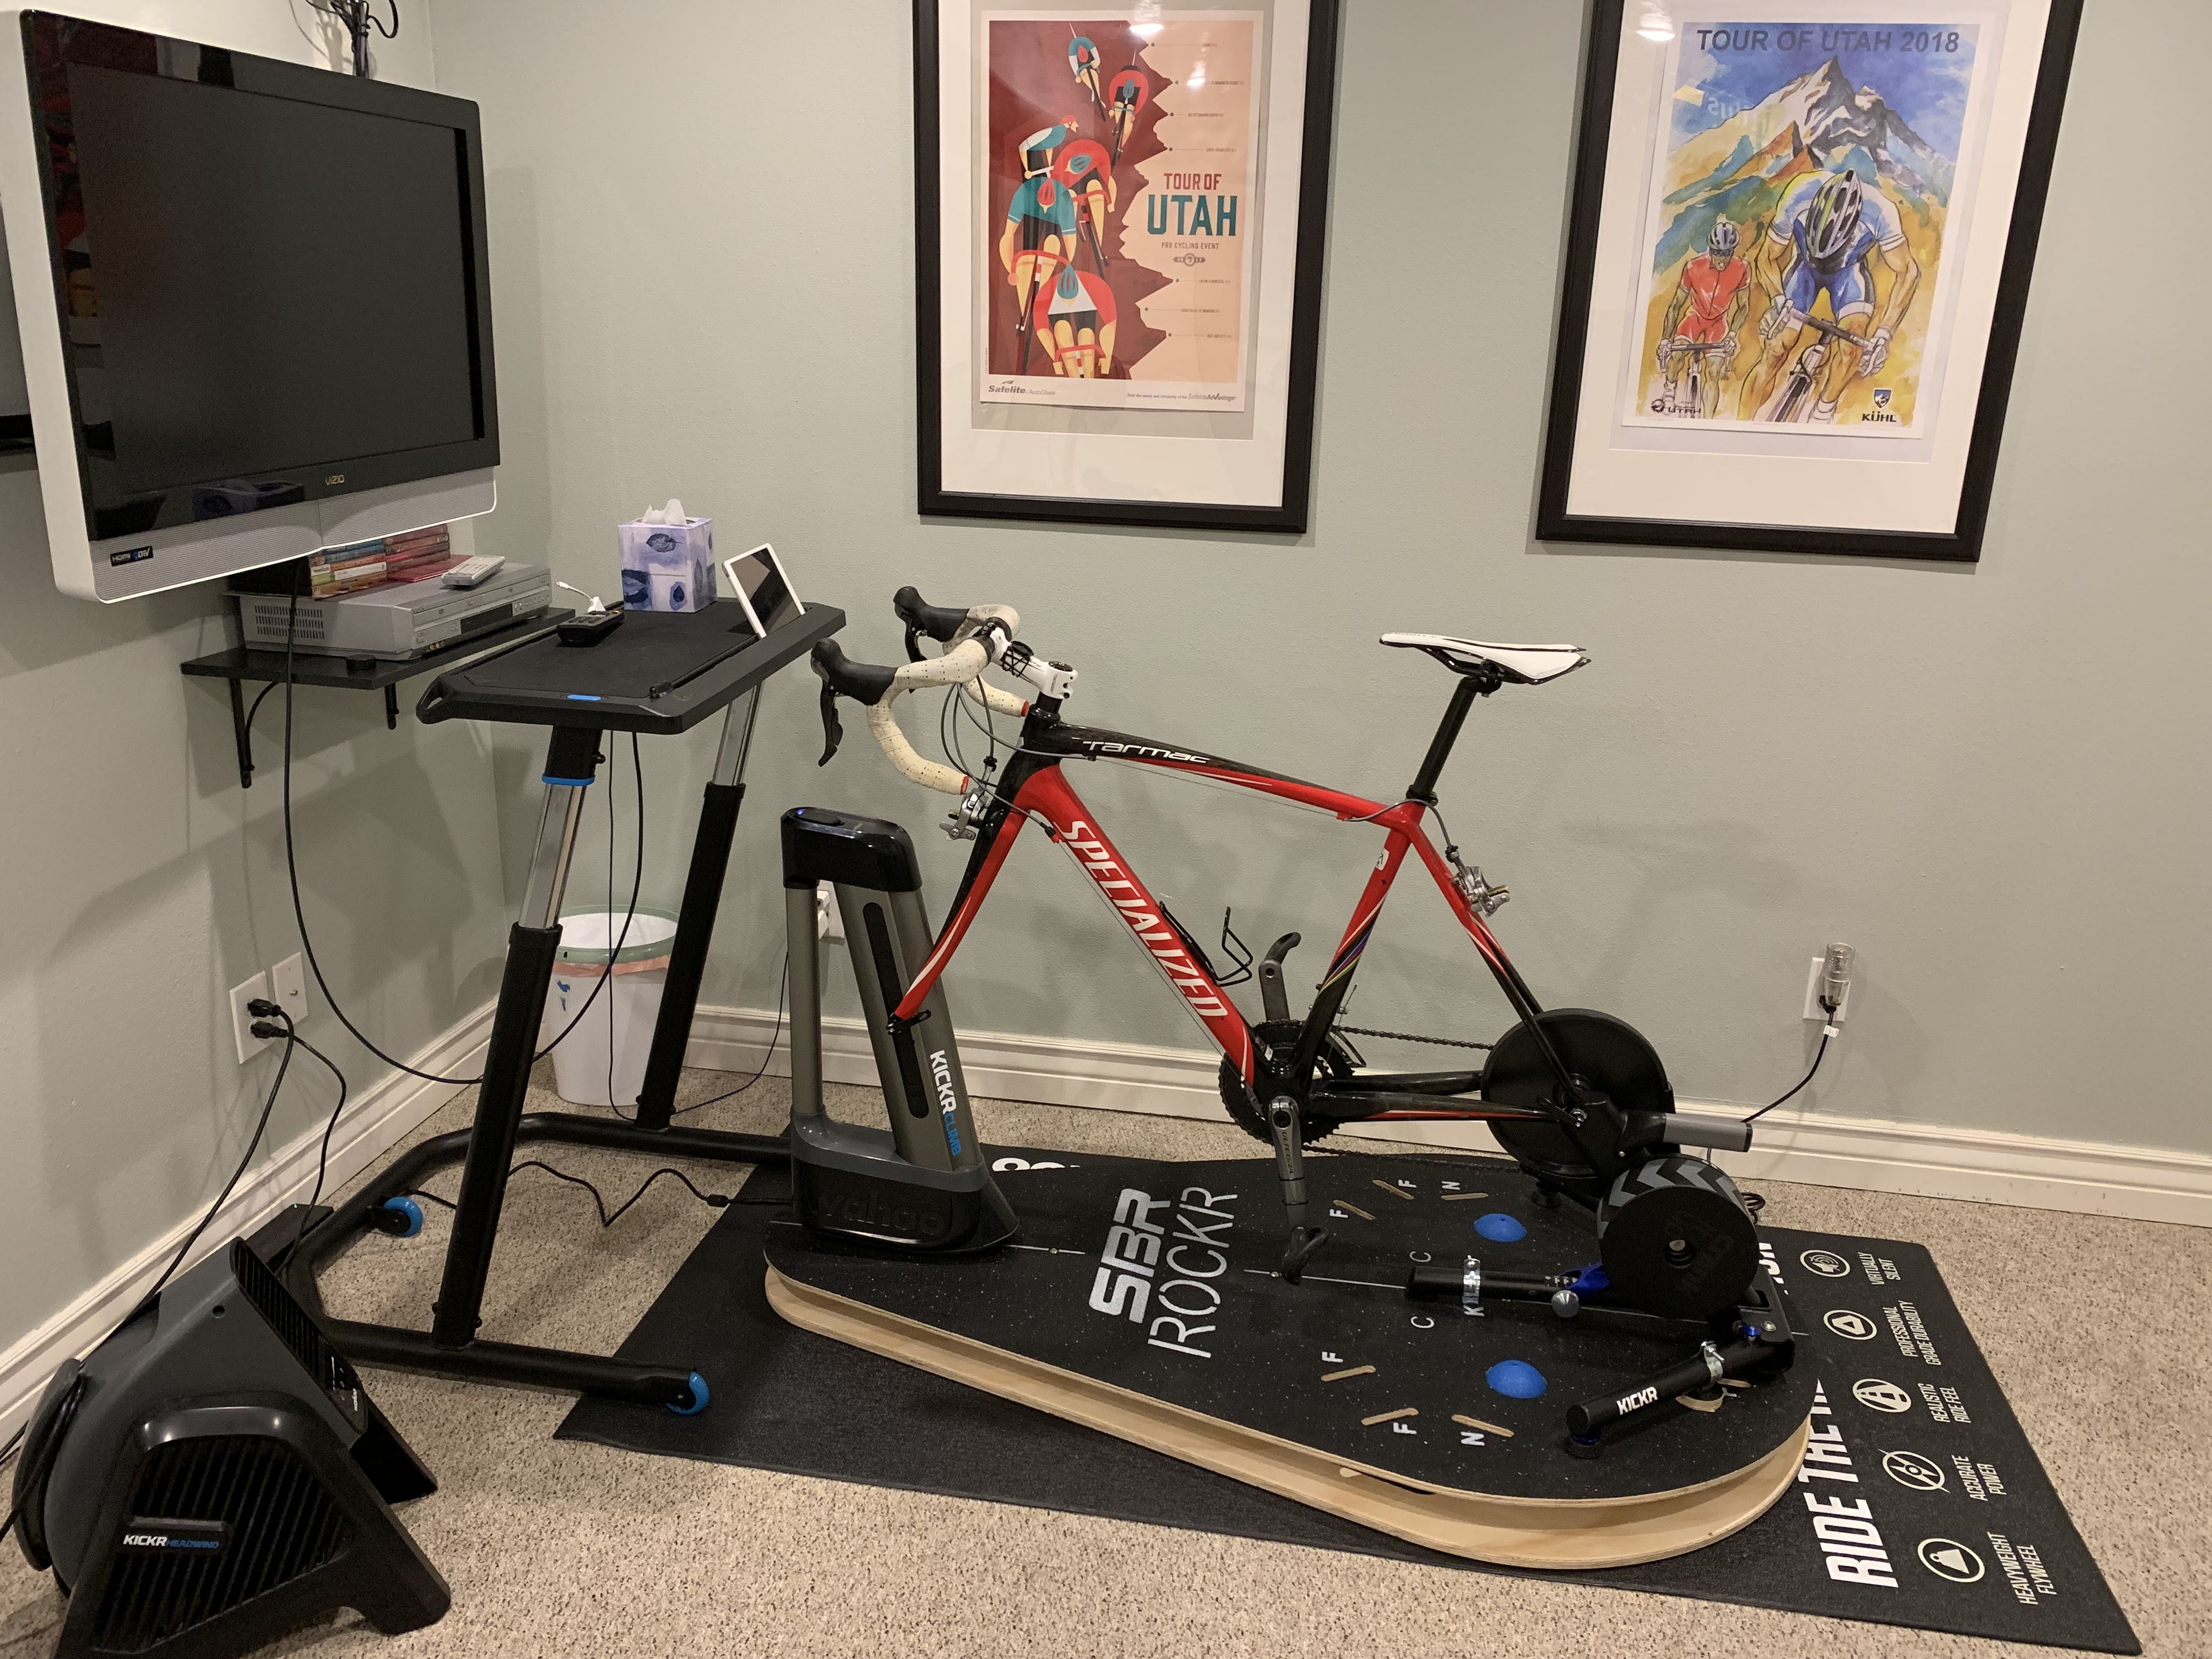 Pin By Charles Hanson On Ironman In 2020 Zwift Cycling Workout